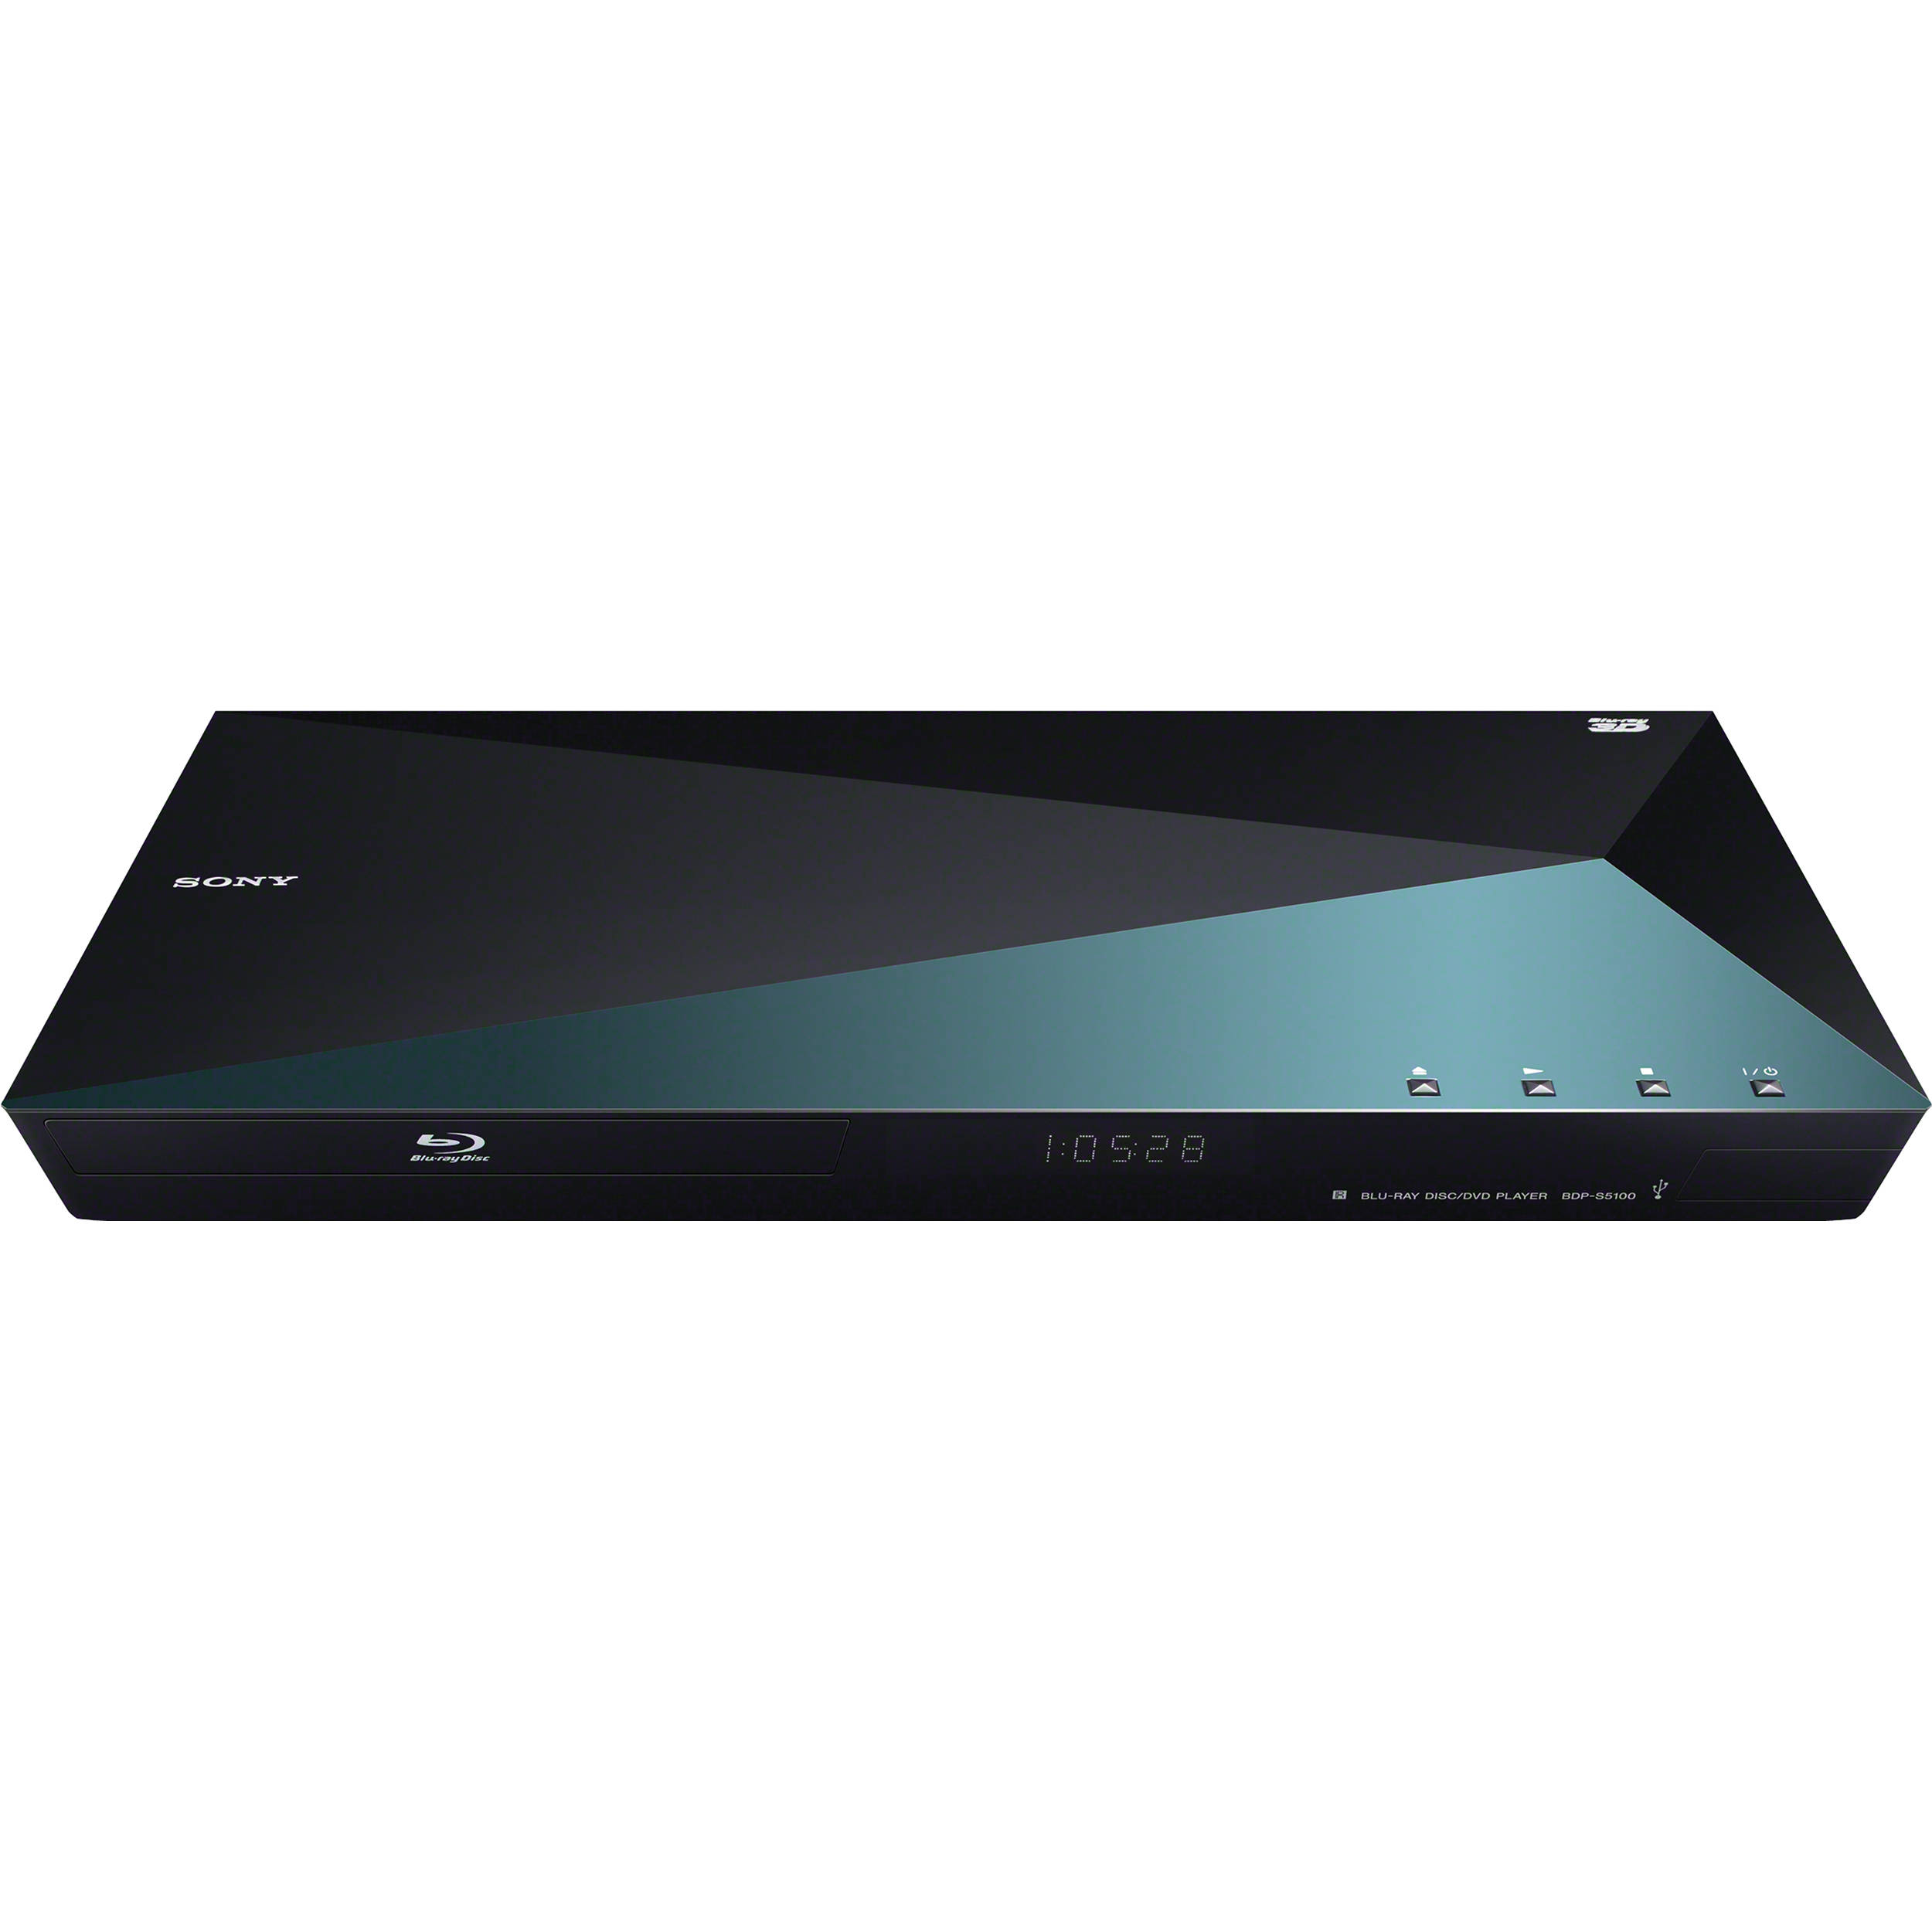 Sony BDP-S5100 3D Blu-ray Disc Player With Super Wi-Fi BDP